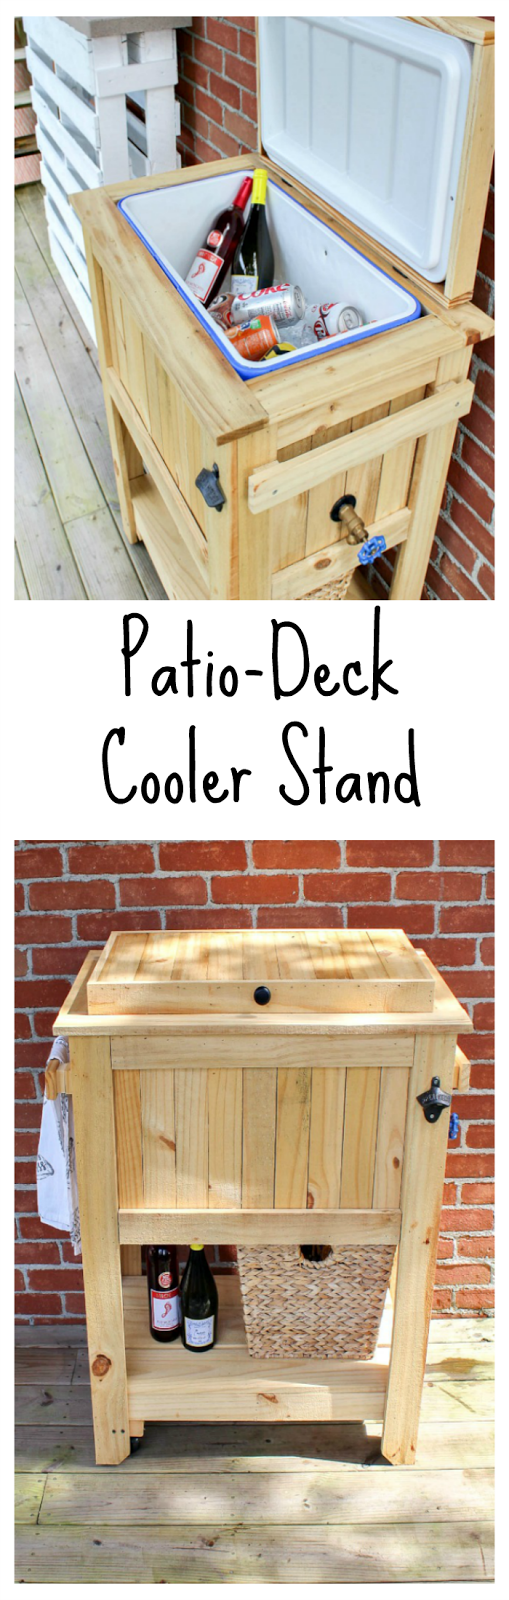 Patio Deck Cooler Stand Deck Cooler Cooler Stand Patio